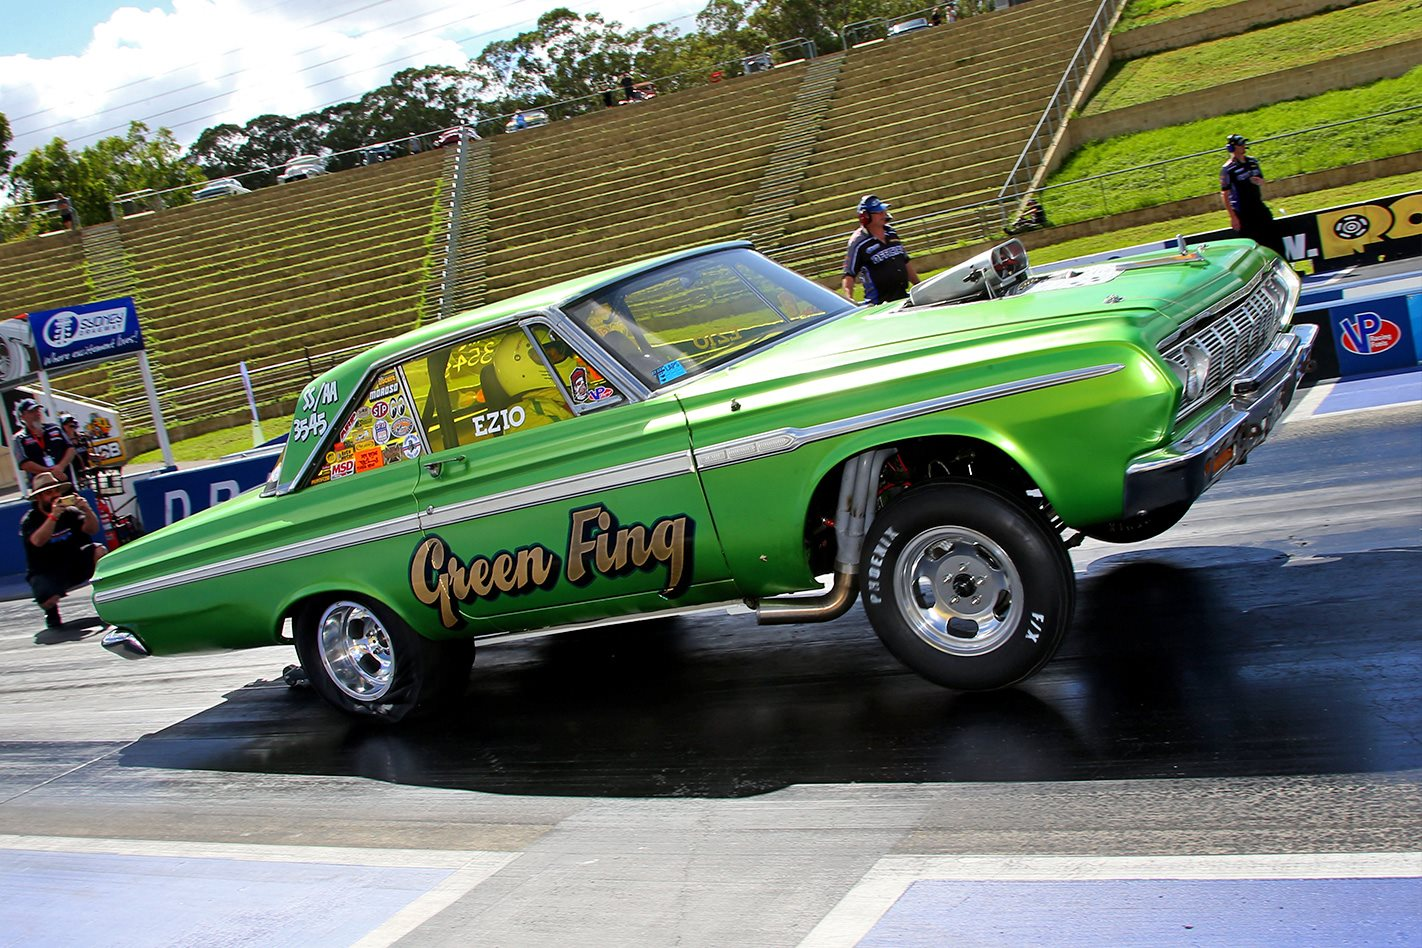 Green Fing Plymouth Fury